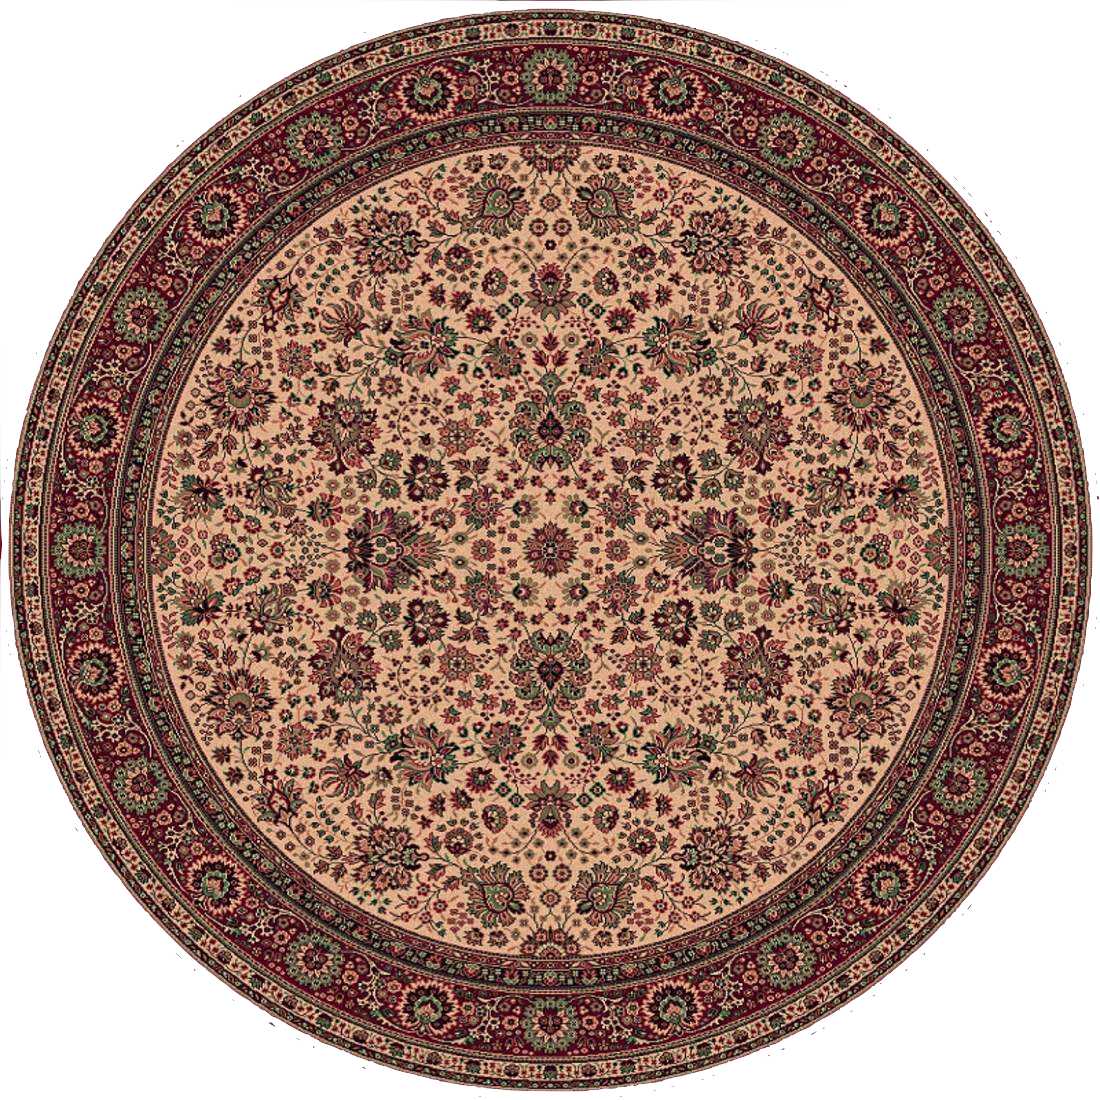 Rug clipart round mat. Carpet png images free